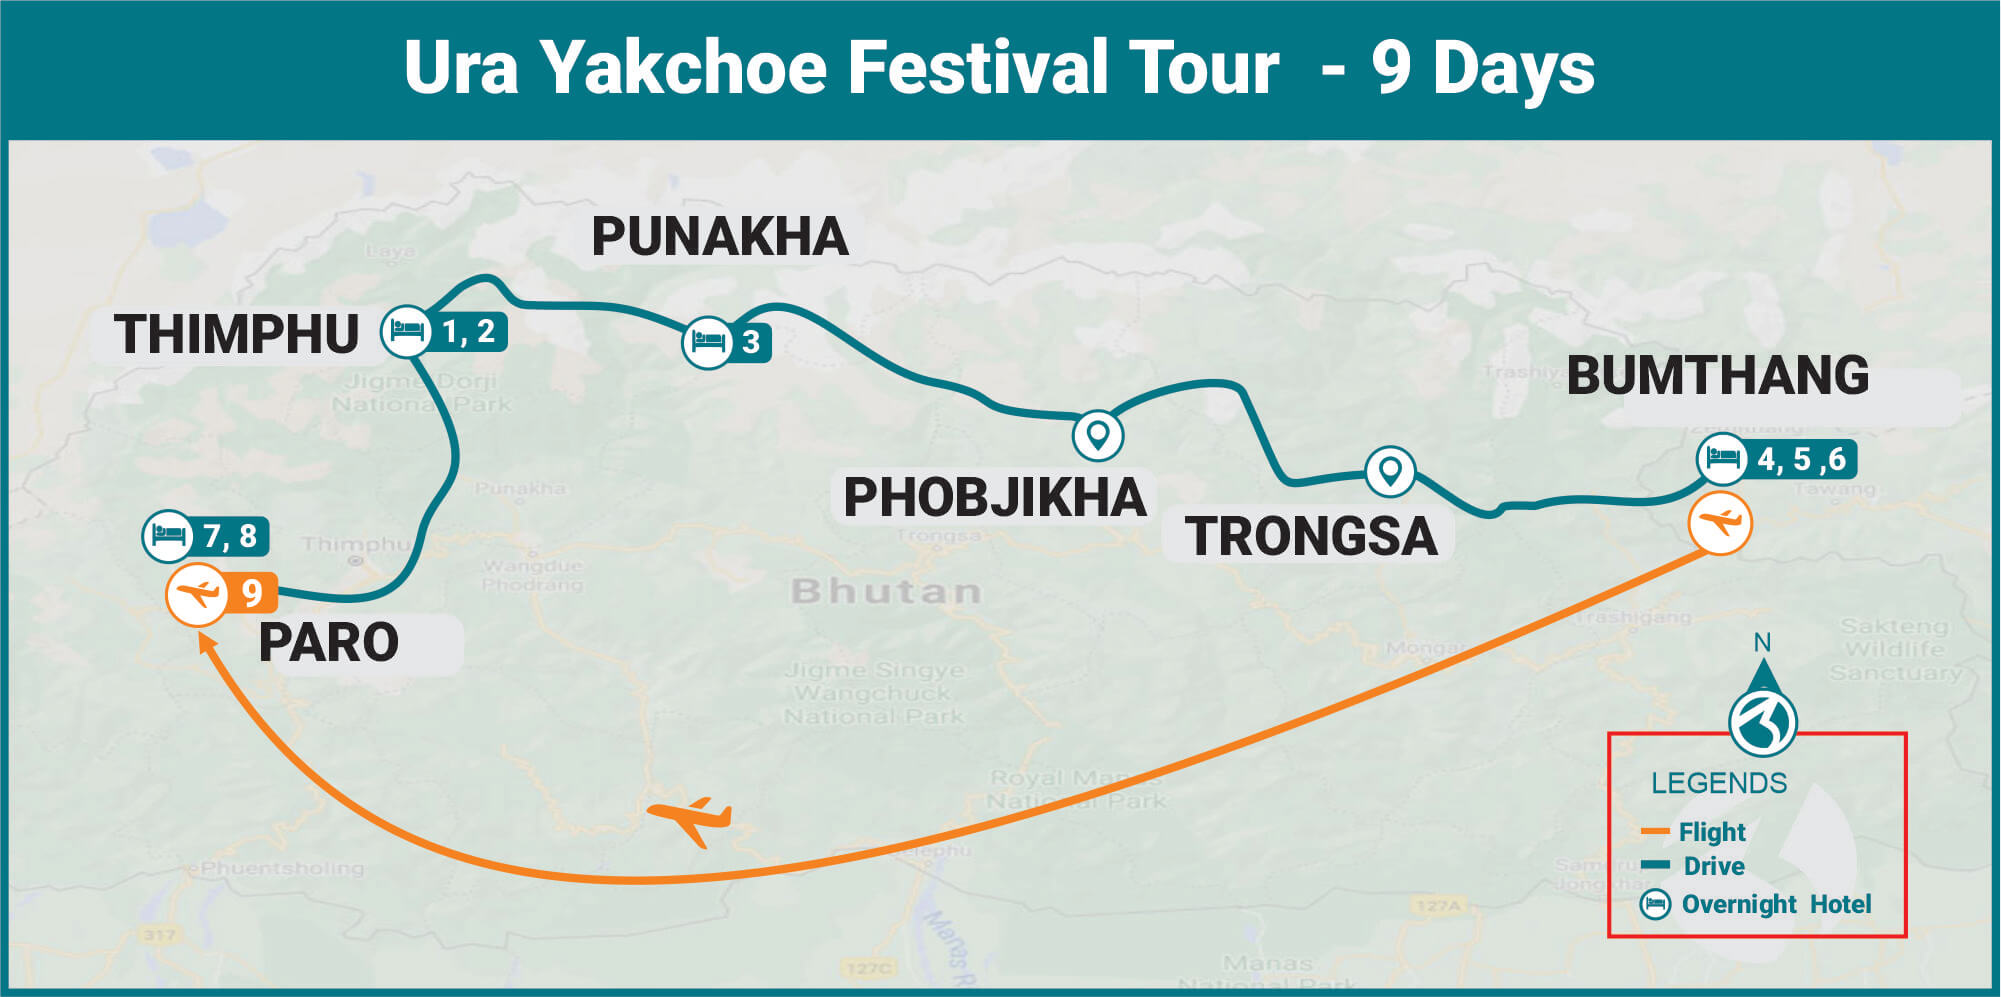 Ura Yakchoe festival Tour 9 Days Route Map